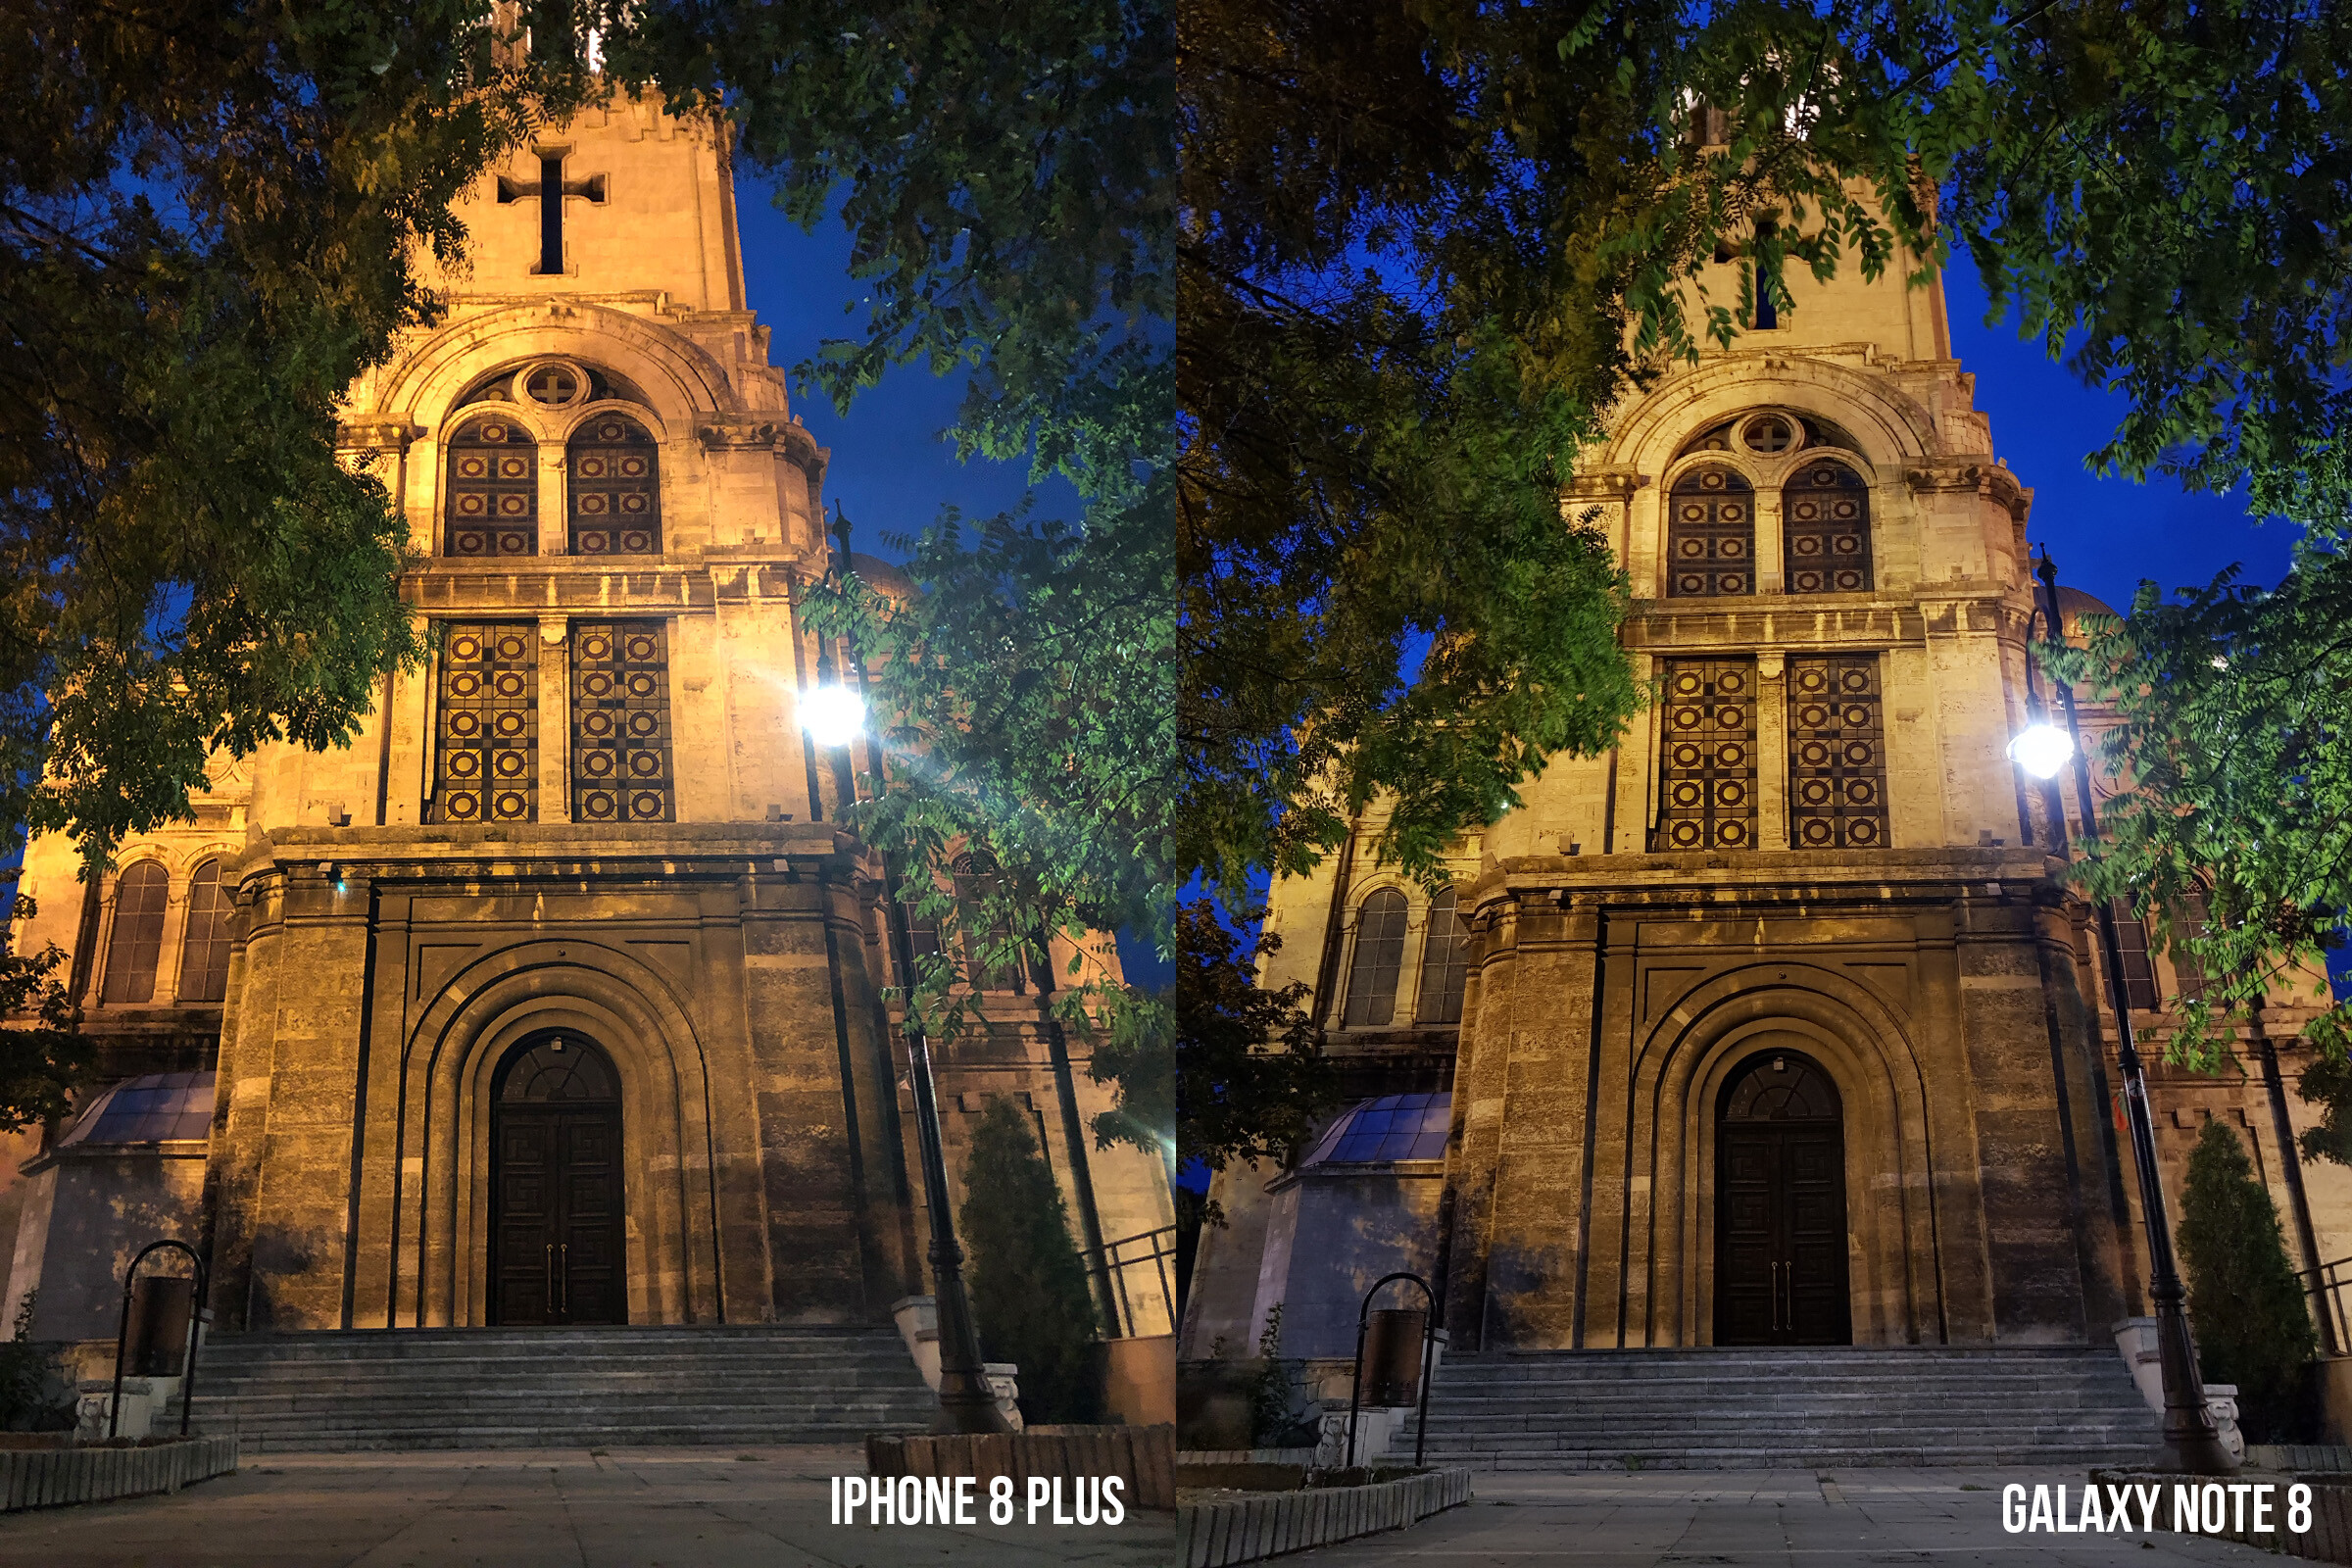 iPhone-8-Plus-vs-Galaxy-Note-8-low-light-camera-comparison-cathedral.jpg